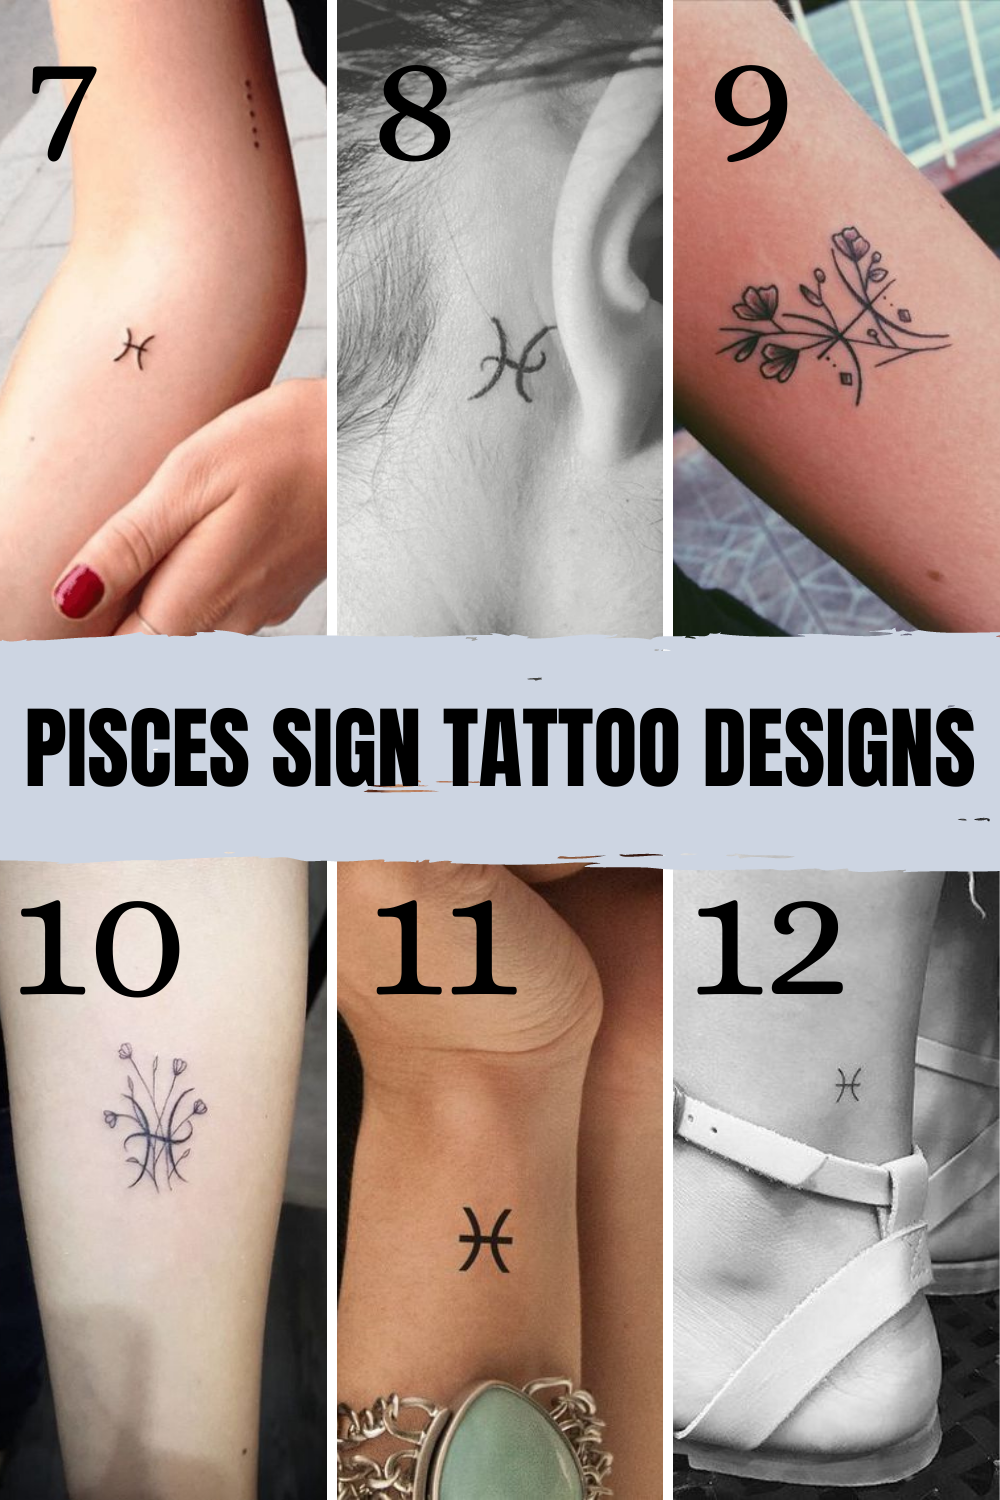 Pisces Signs Tattoo Images